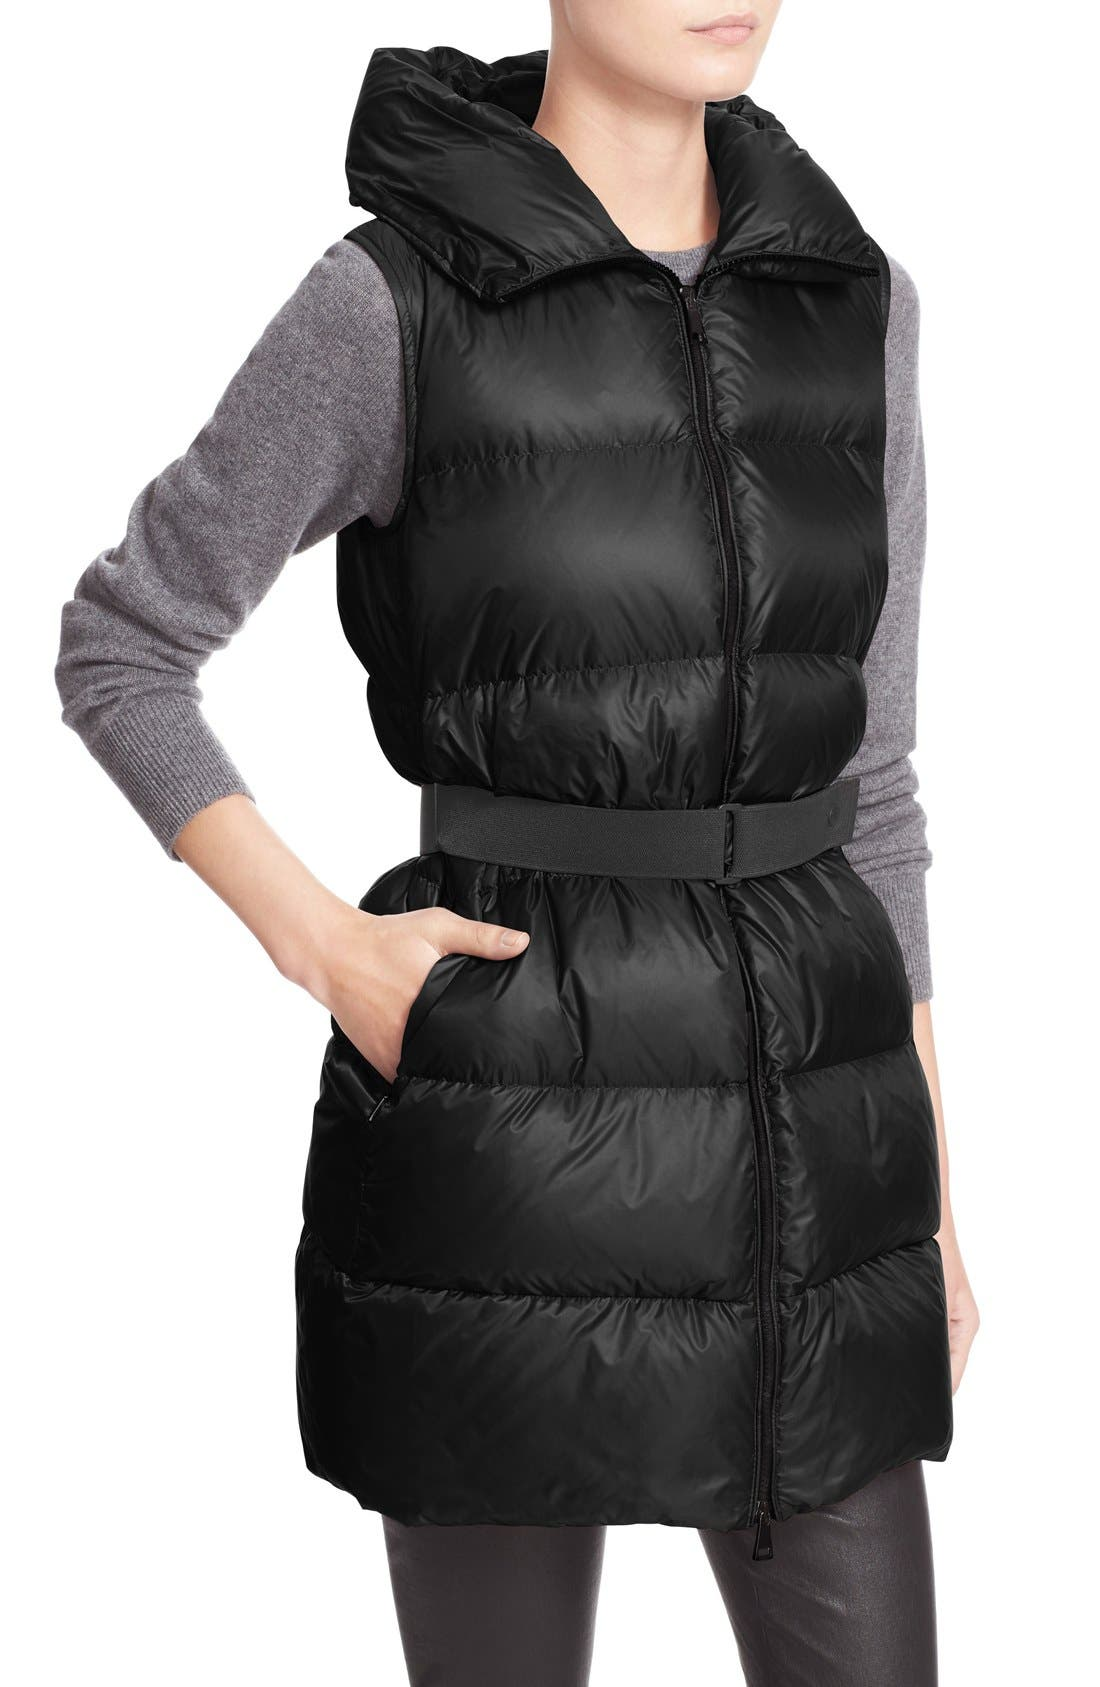 'Glykeria' Water Resistant Hooded Down Puffer Vest,                             Alternate thumbnail 6, color,                             001